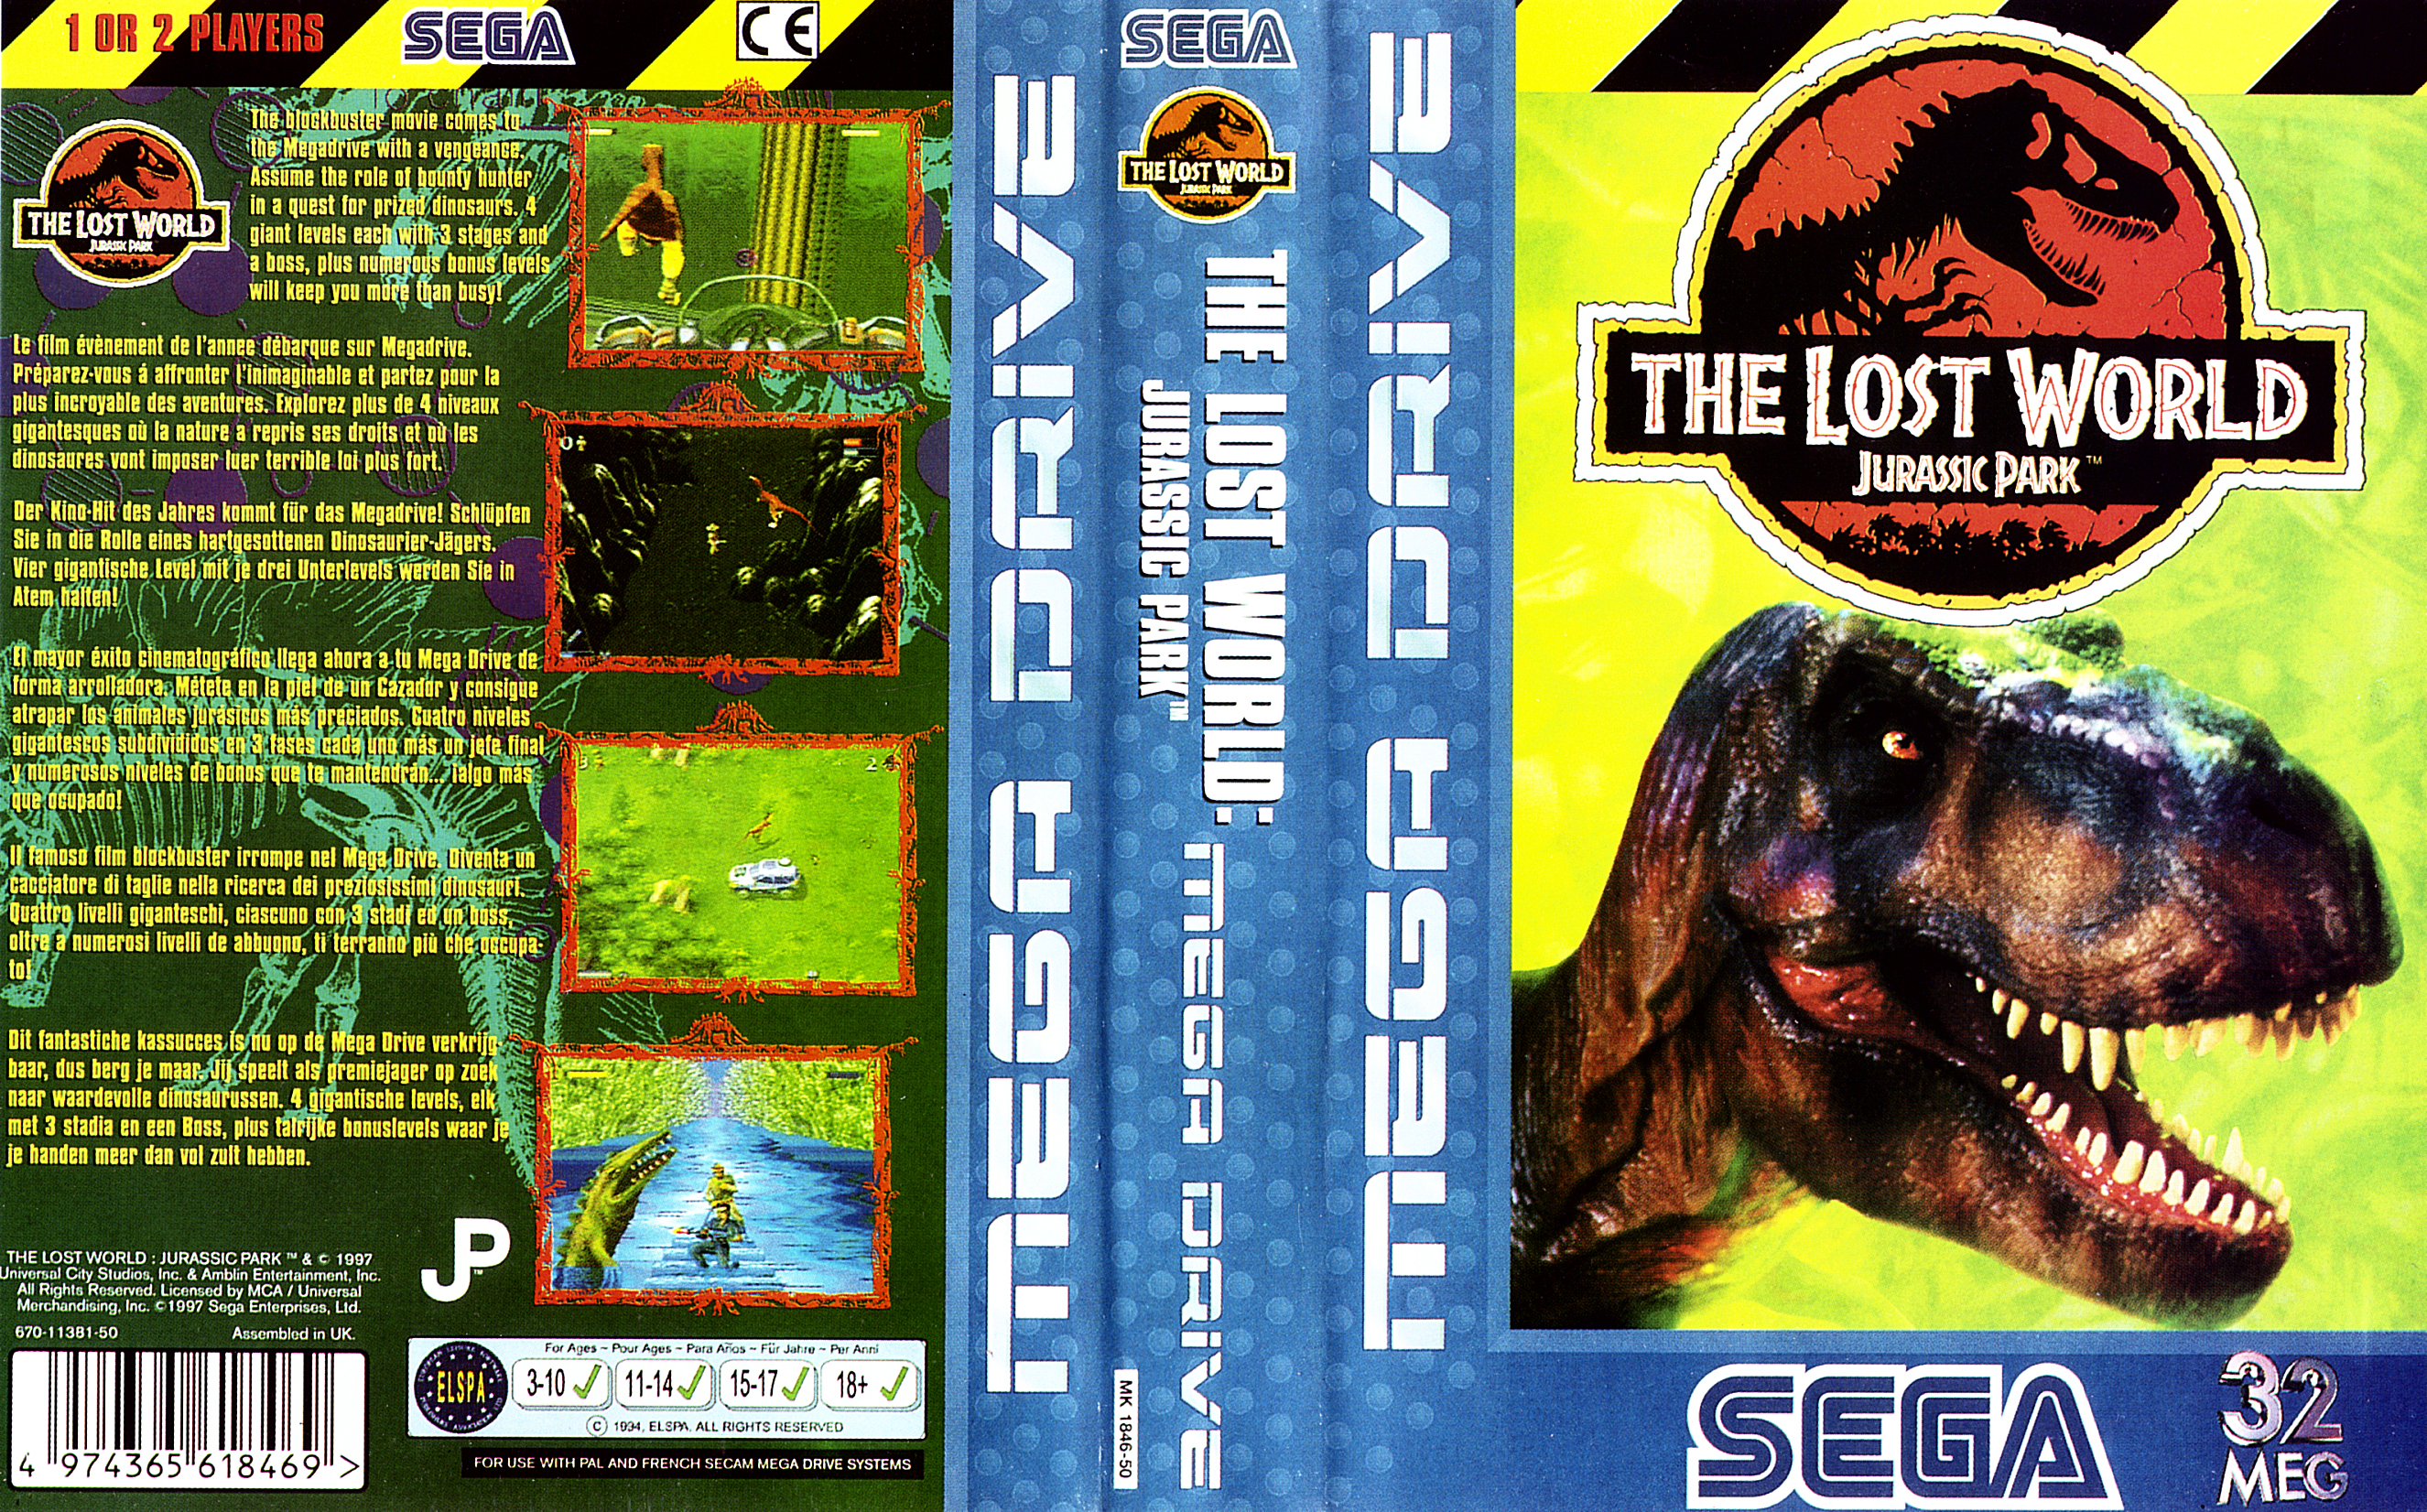 the%20lost%20world%20jurassic%20park.jpg